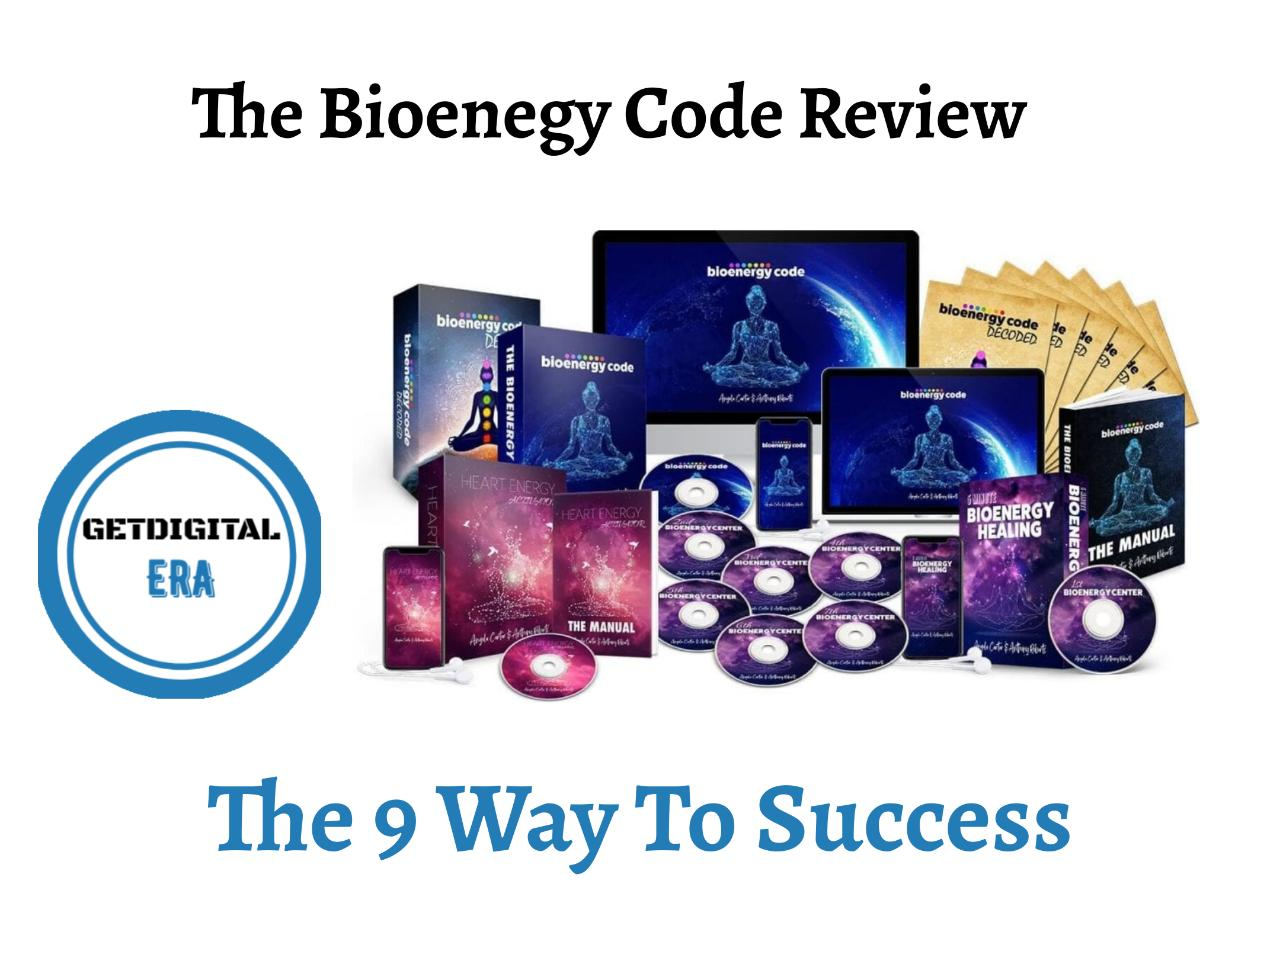 The Bioenergy Code Review